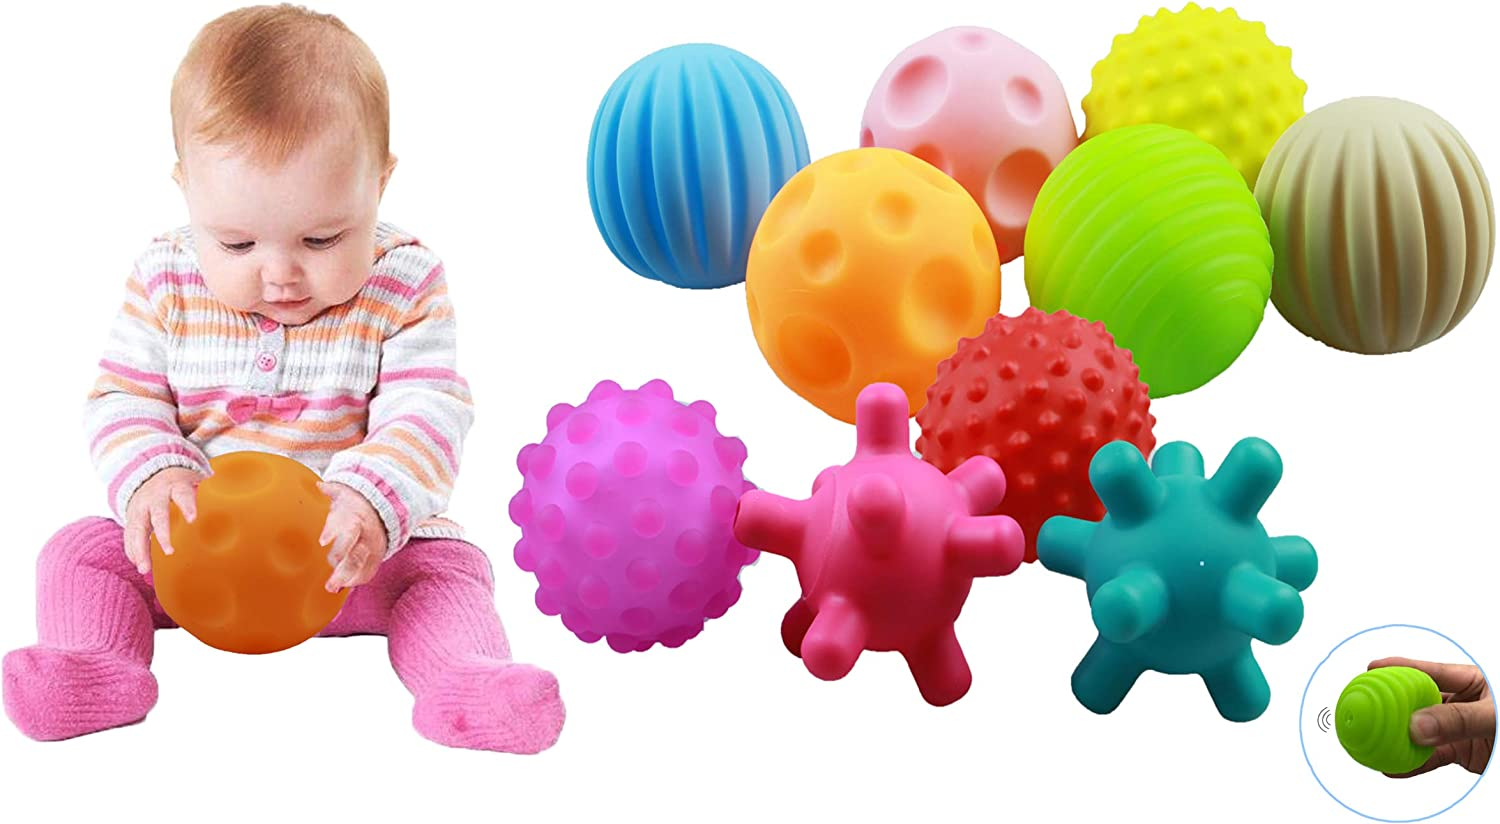 ROHSCE 10 Pack Sensory Balls for Babies Direct stock discount 12 Months Kids to Under blast sales 6 Bab